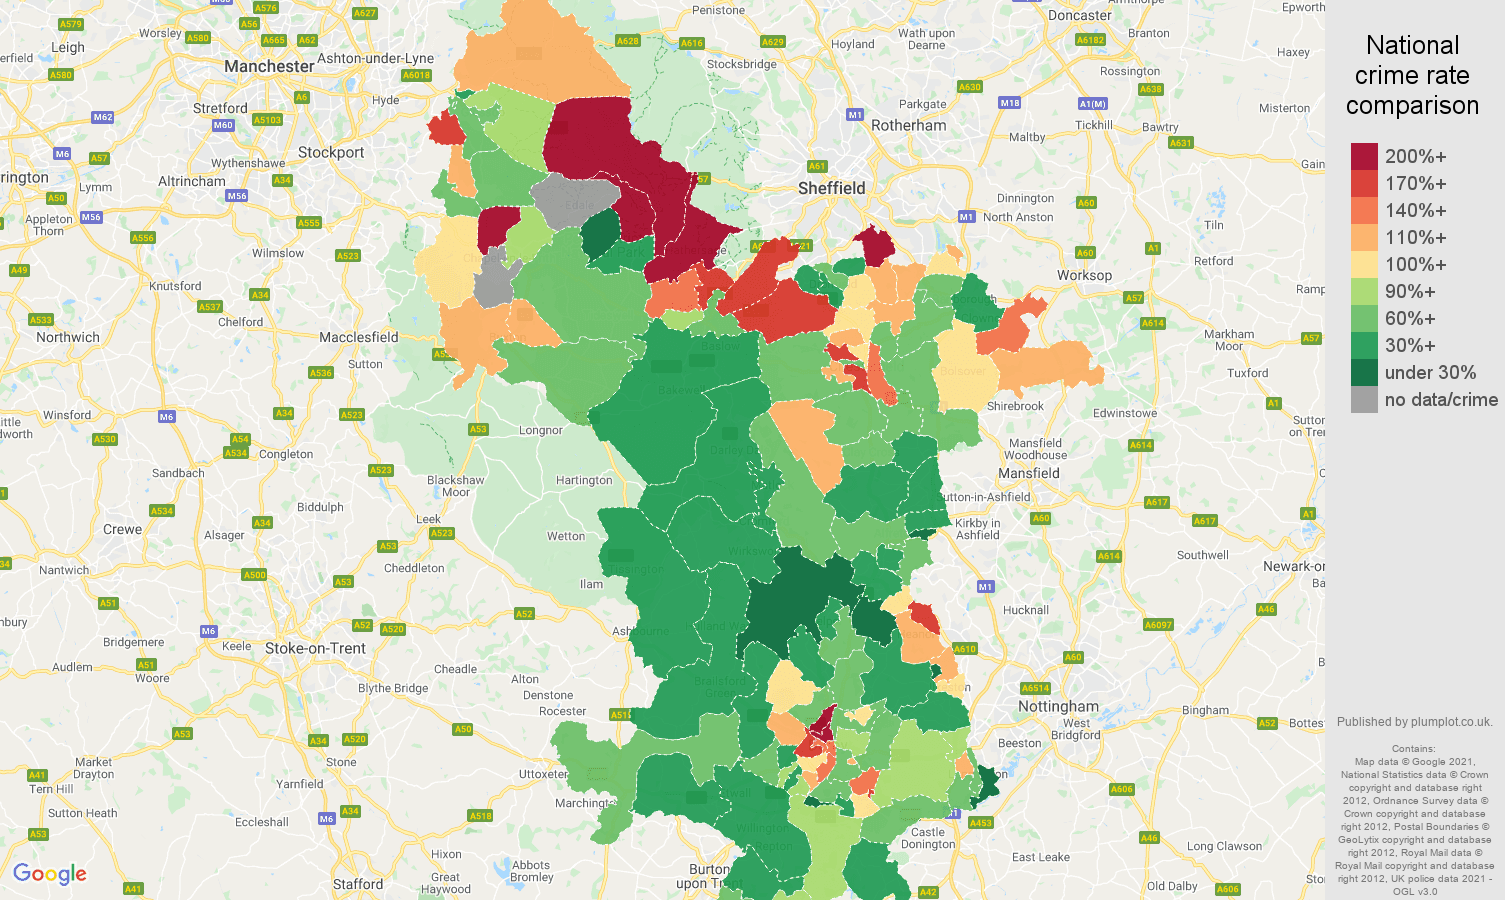 Derbyshire burglary crime rate comparison map